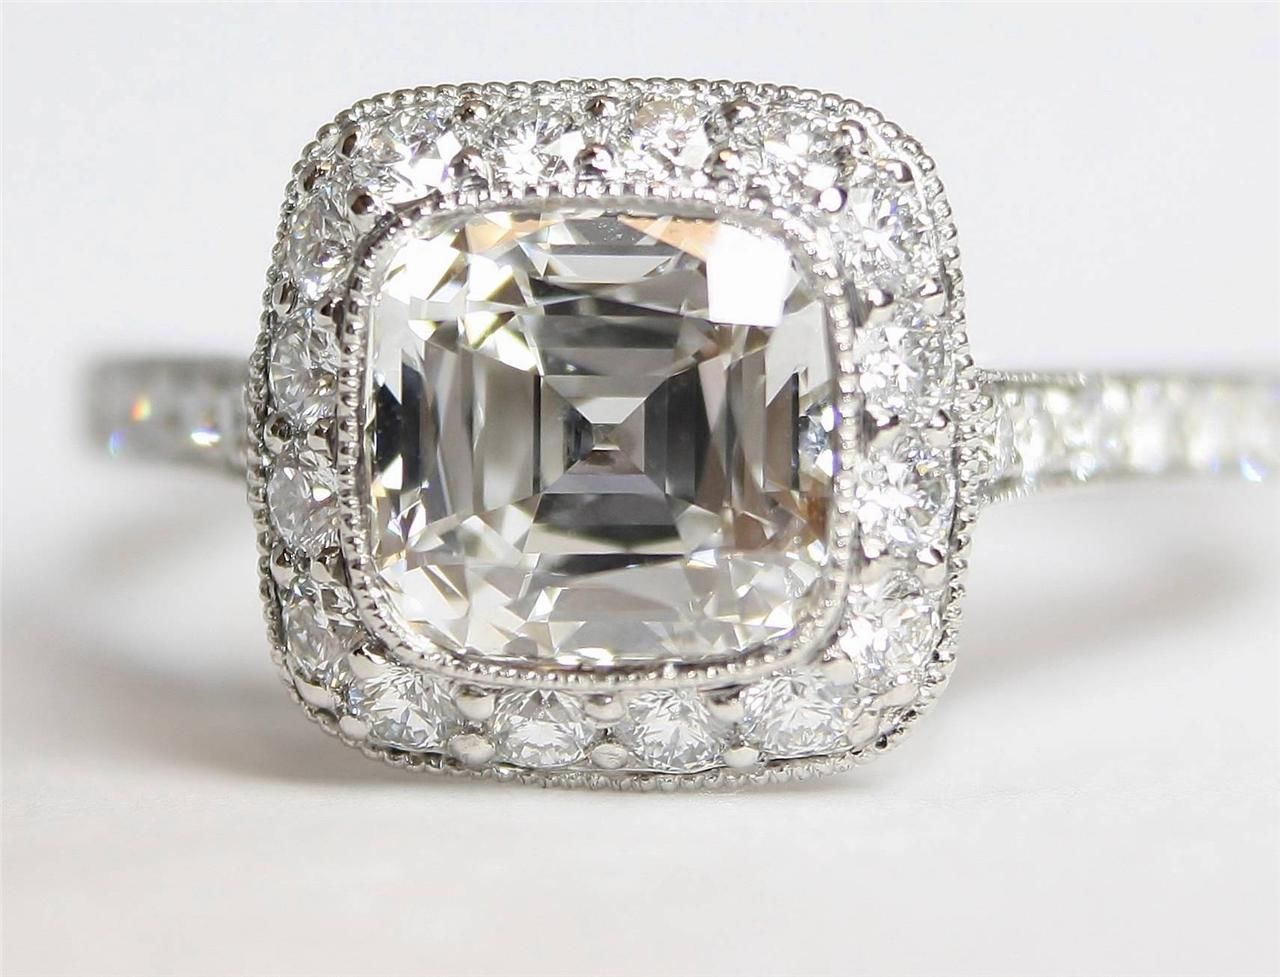 sell a tiffany engagement ring